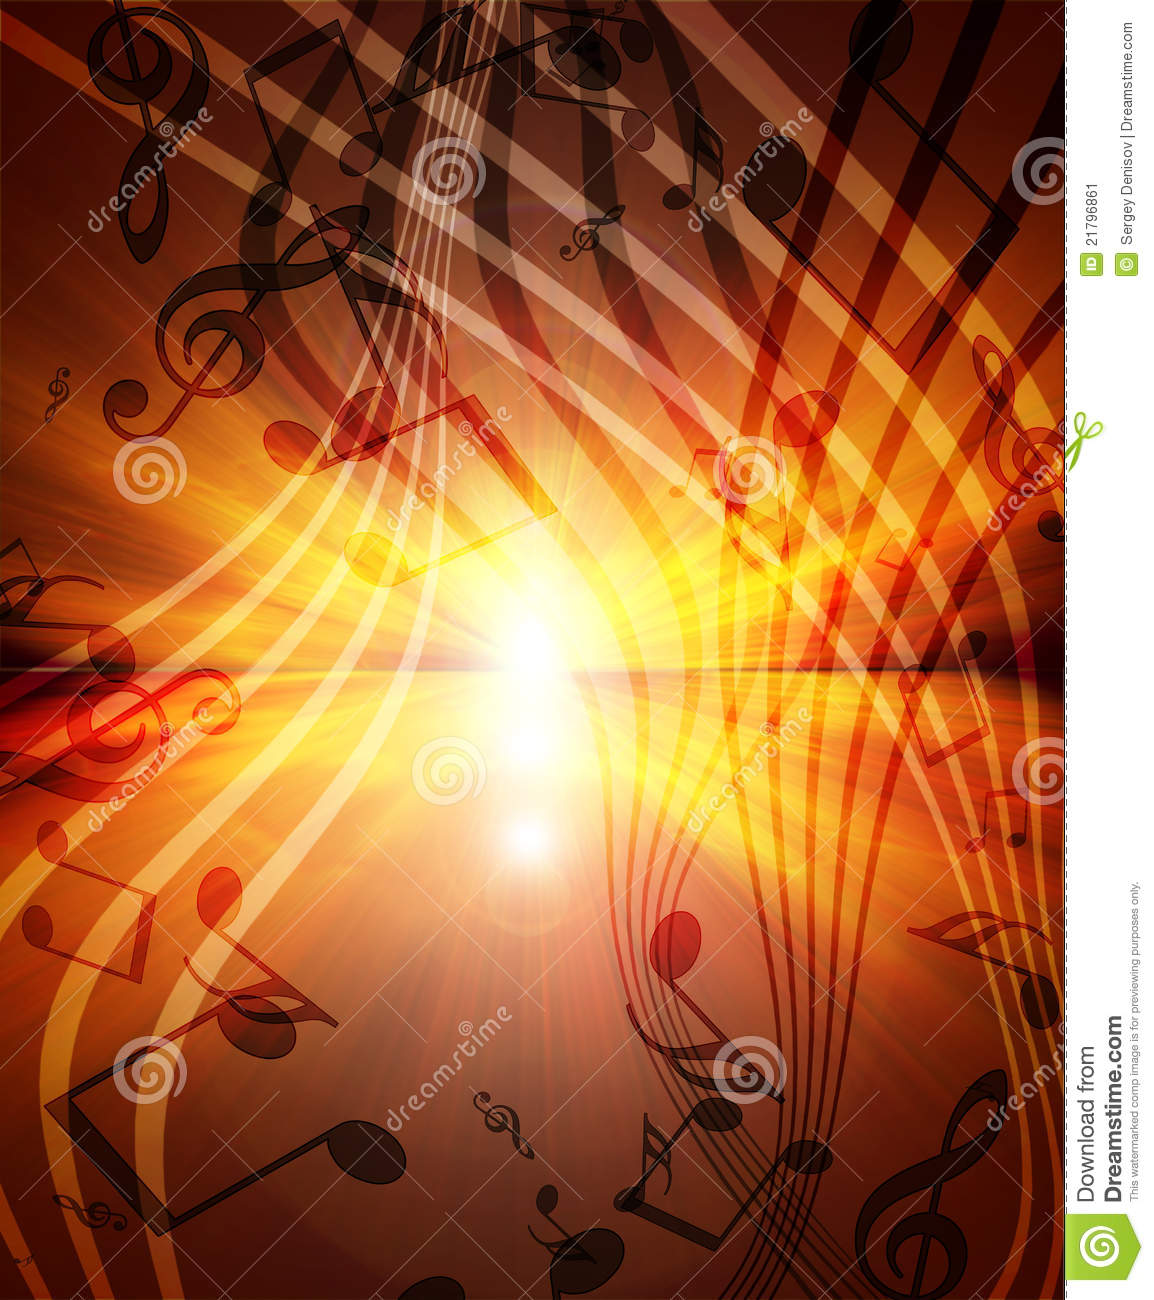 Glowing sunset with musical